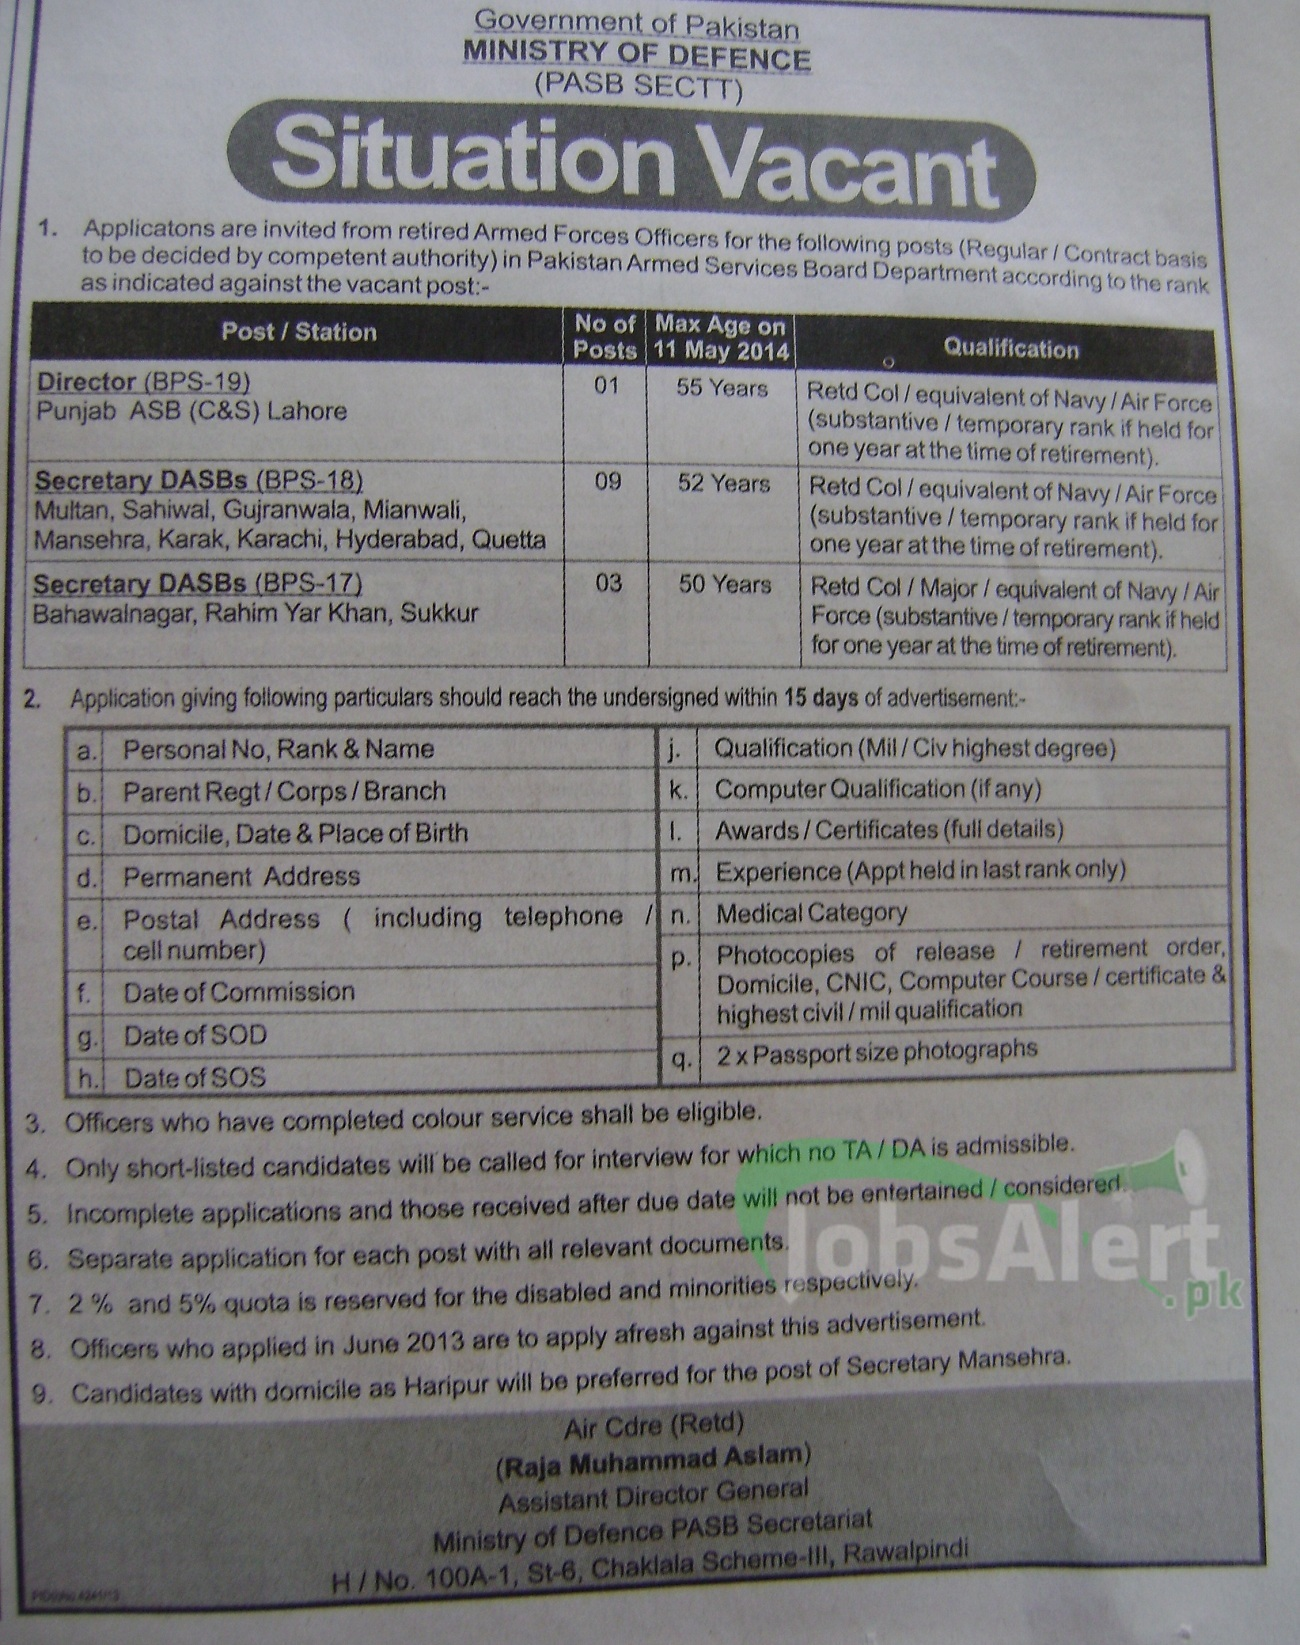 Ministry of Defence (MOD) Govt. of Pakistan Jobs 2014